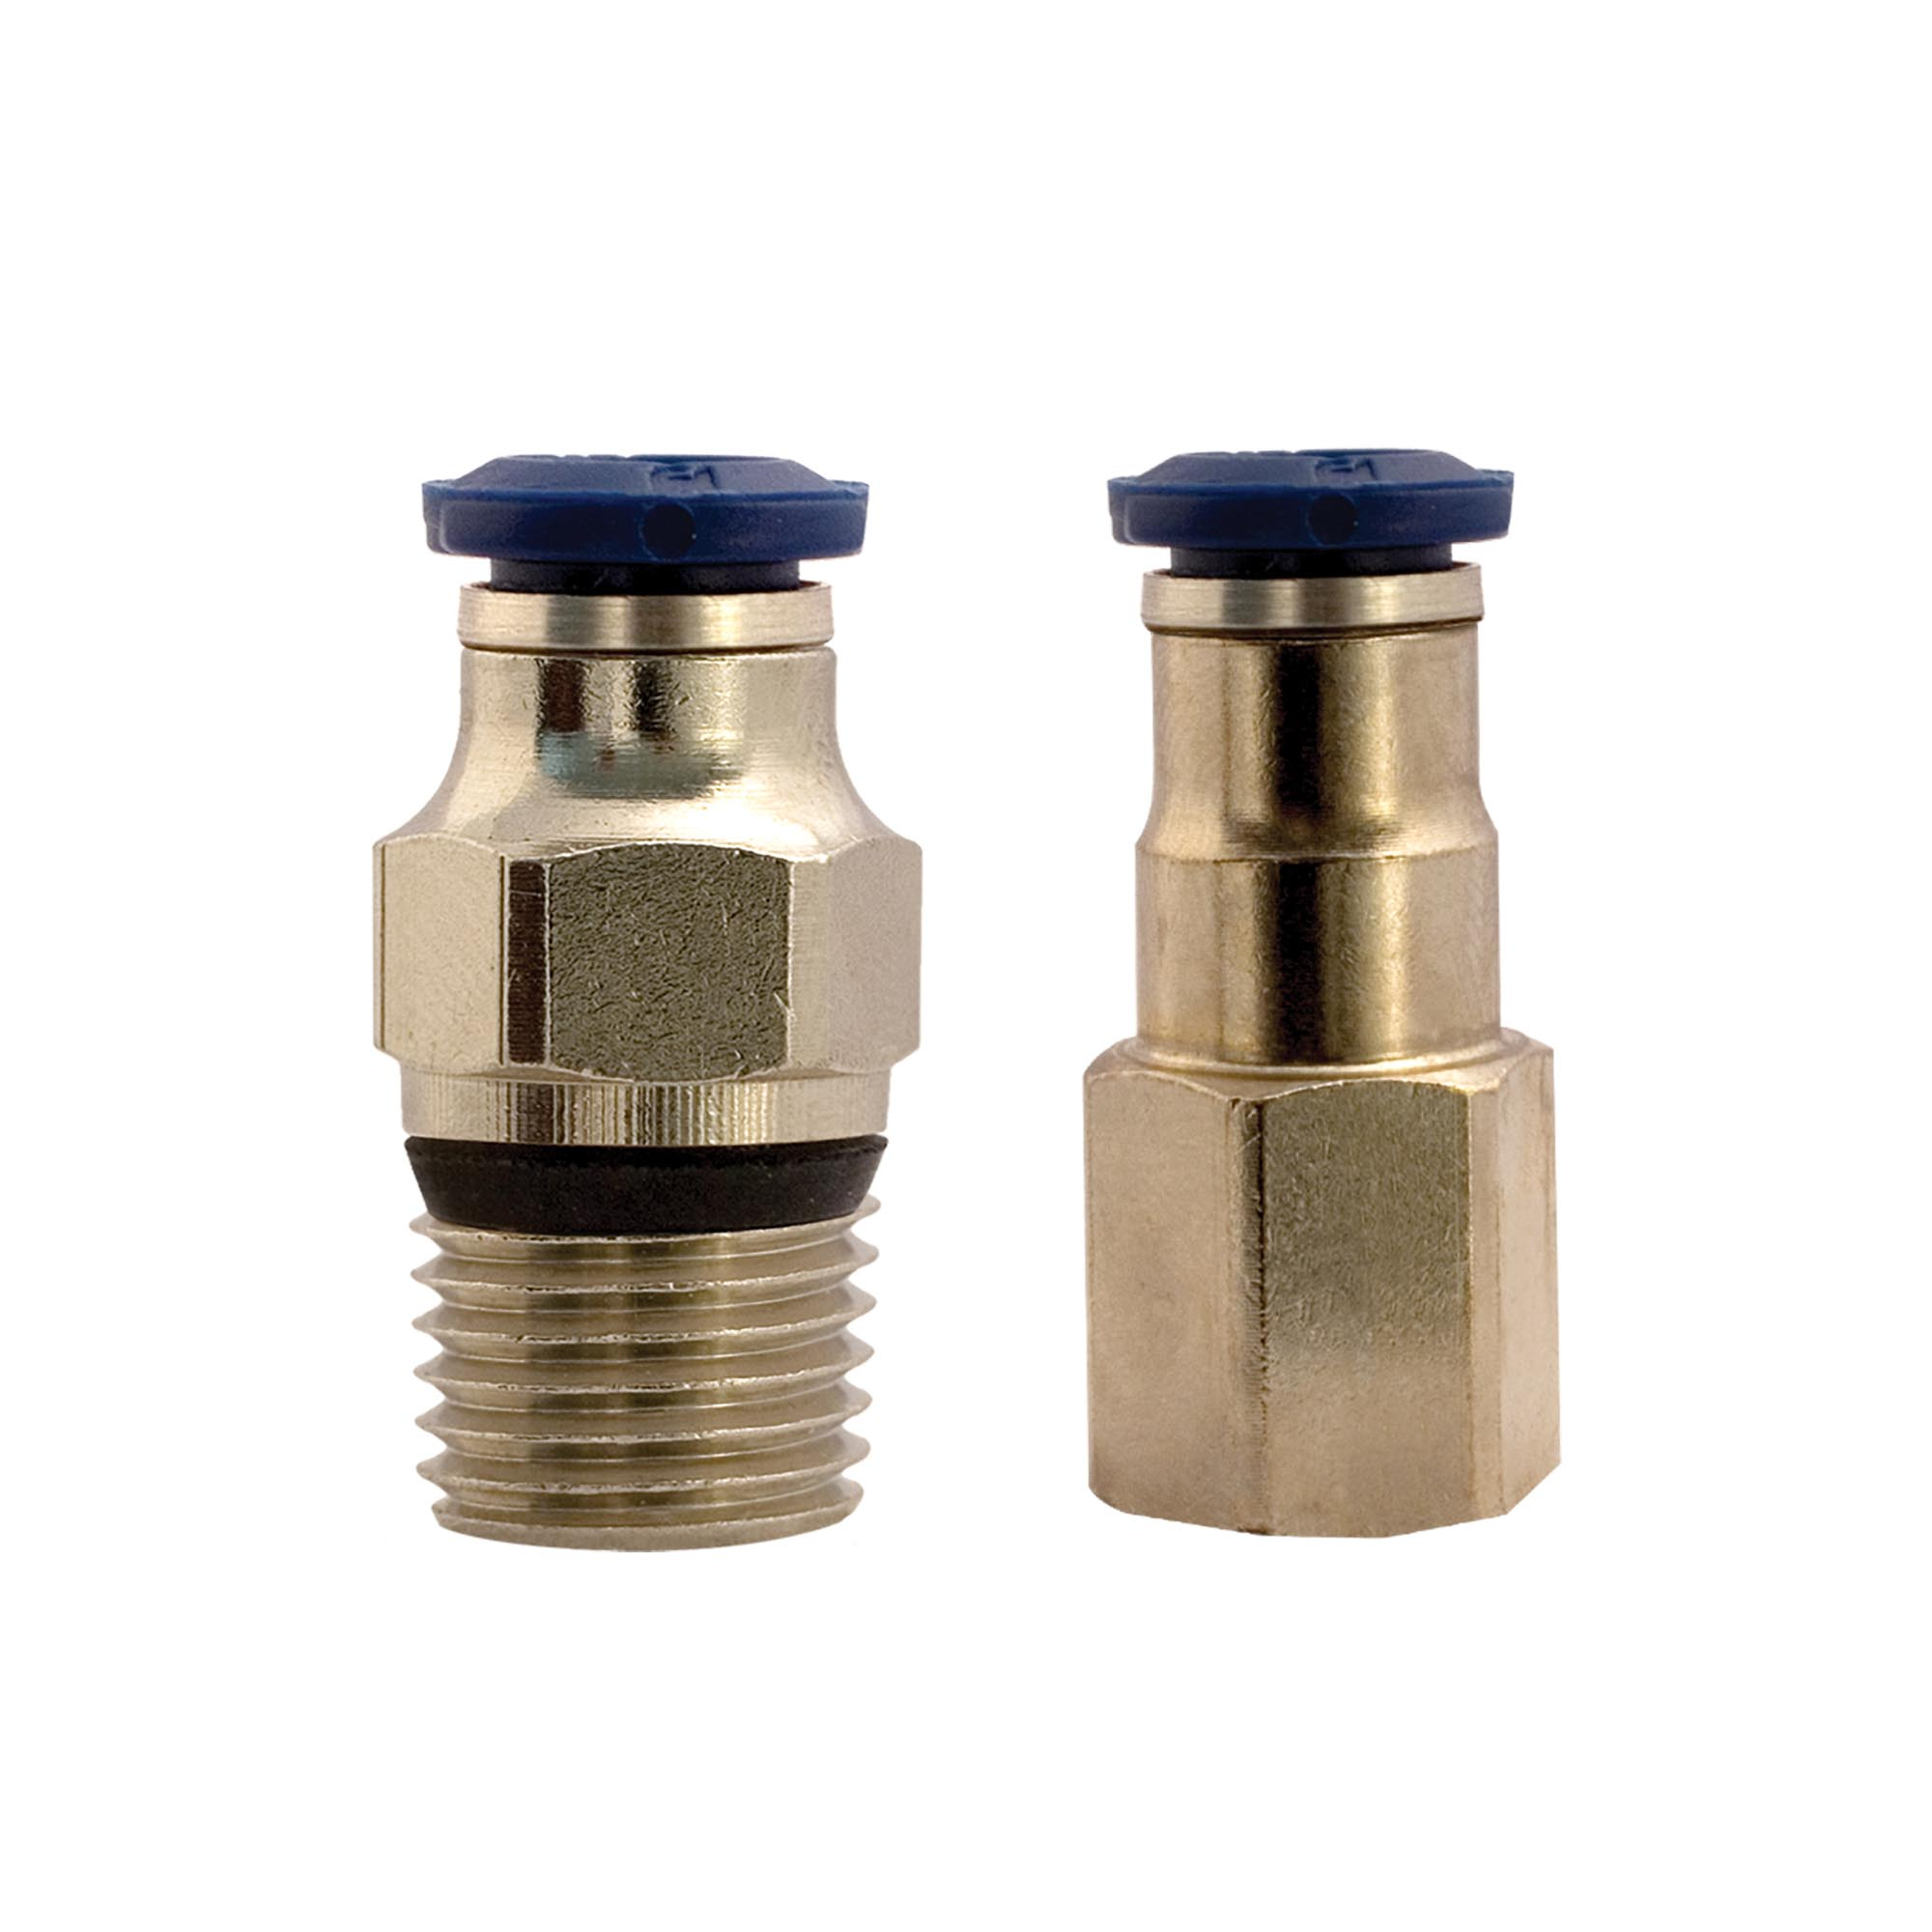 Model 900780 Push-In Connector, 3/8 Tube